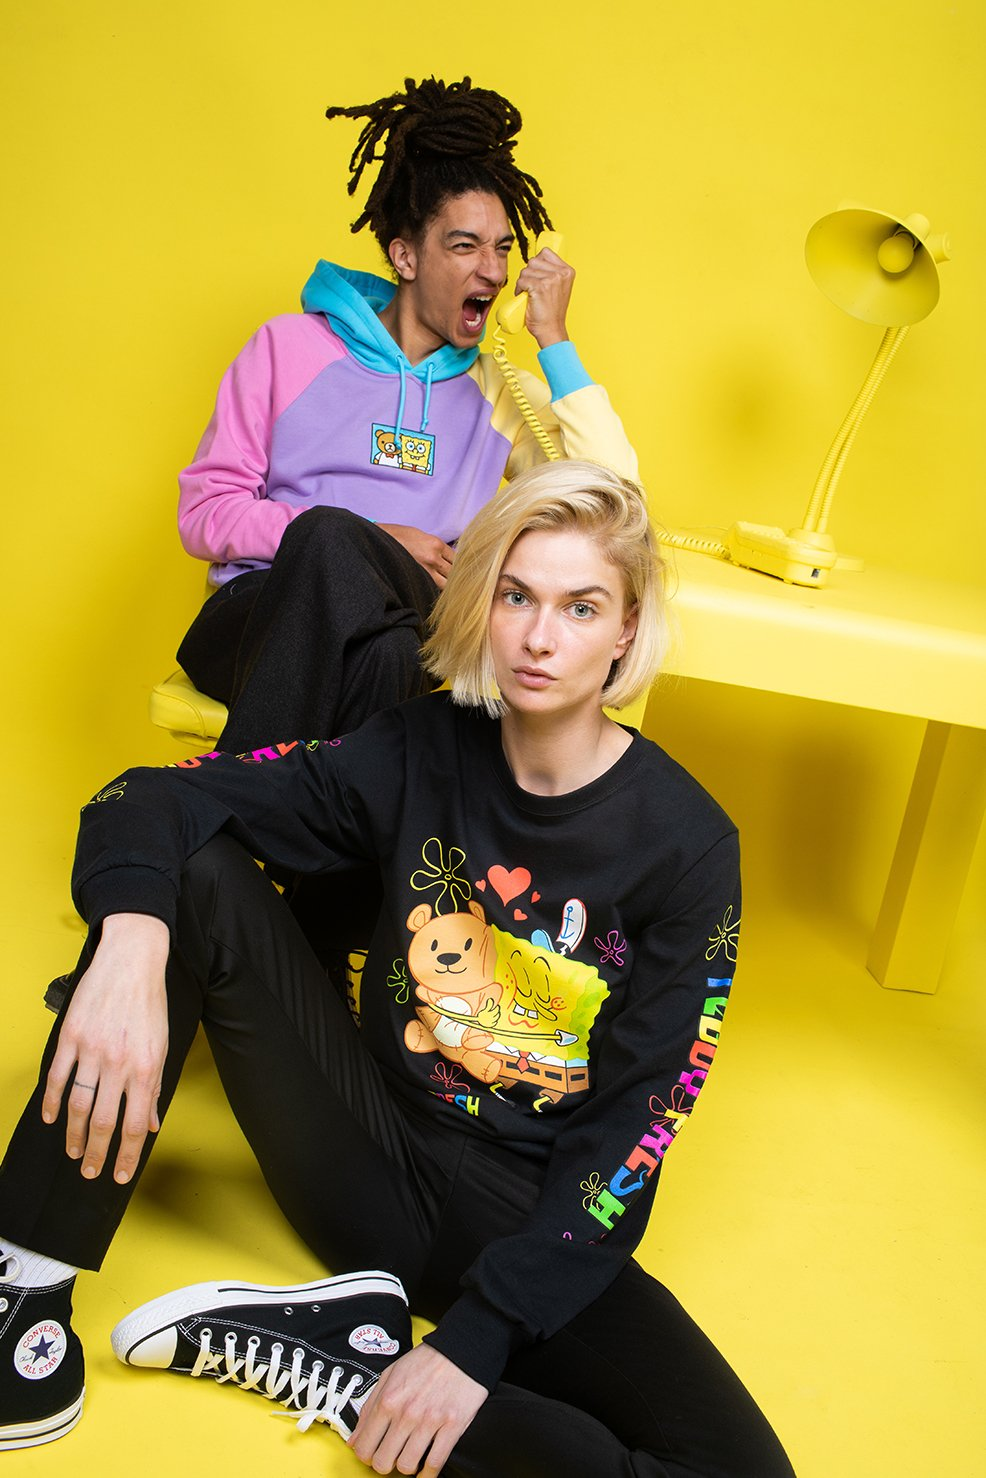 Teddy Fresh x SpongeBob SquarePants